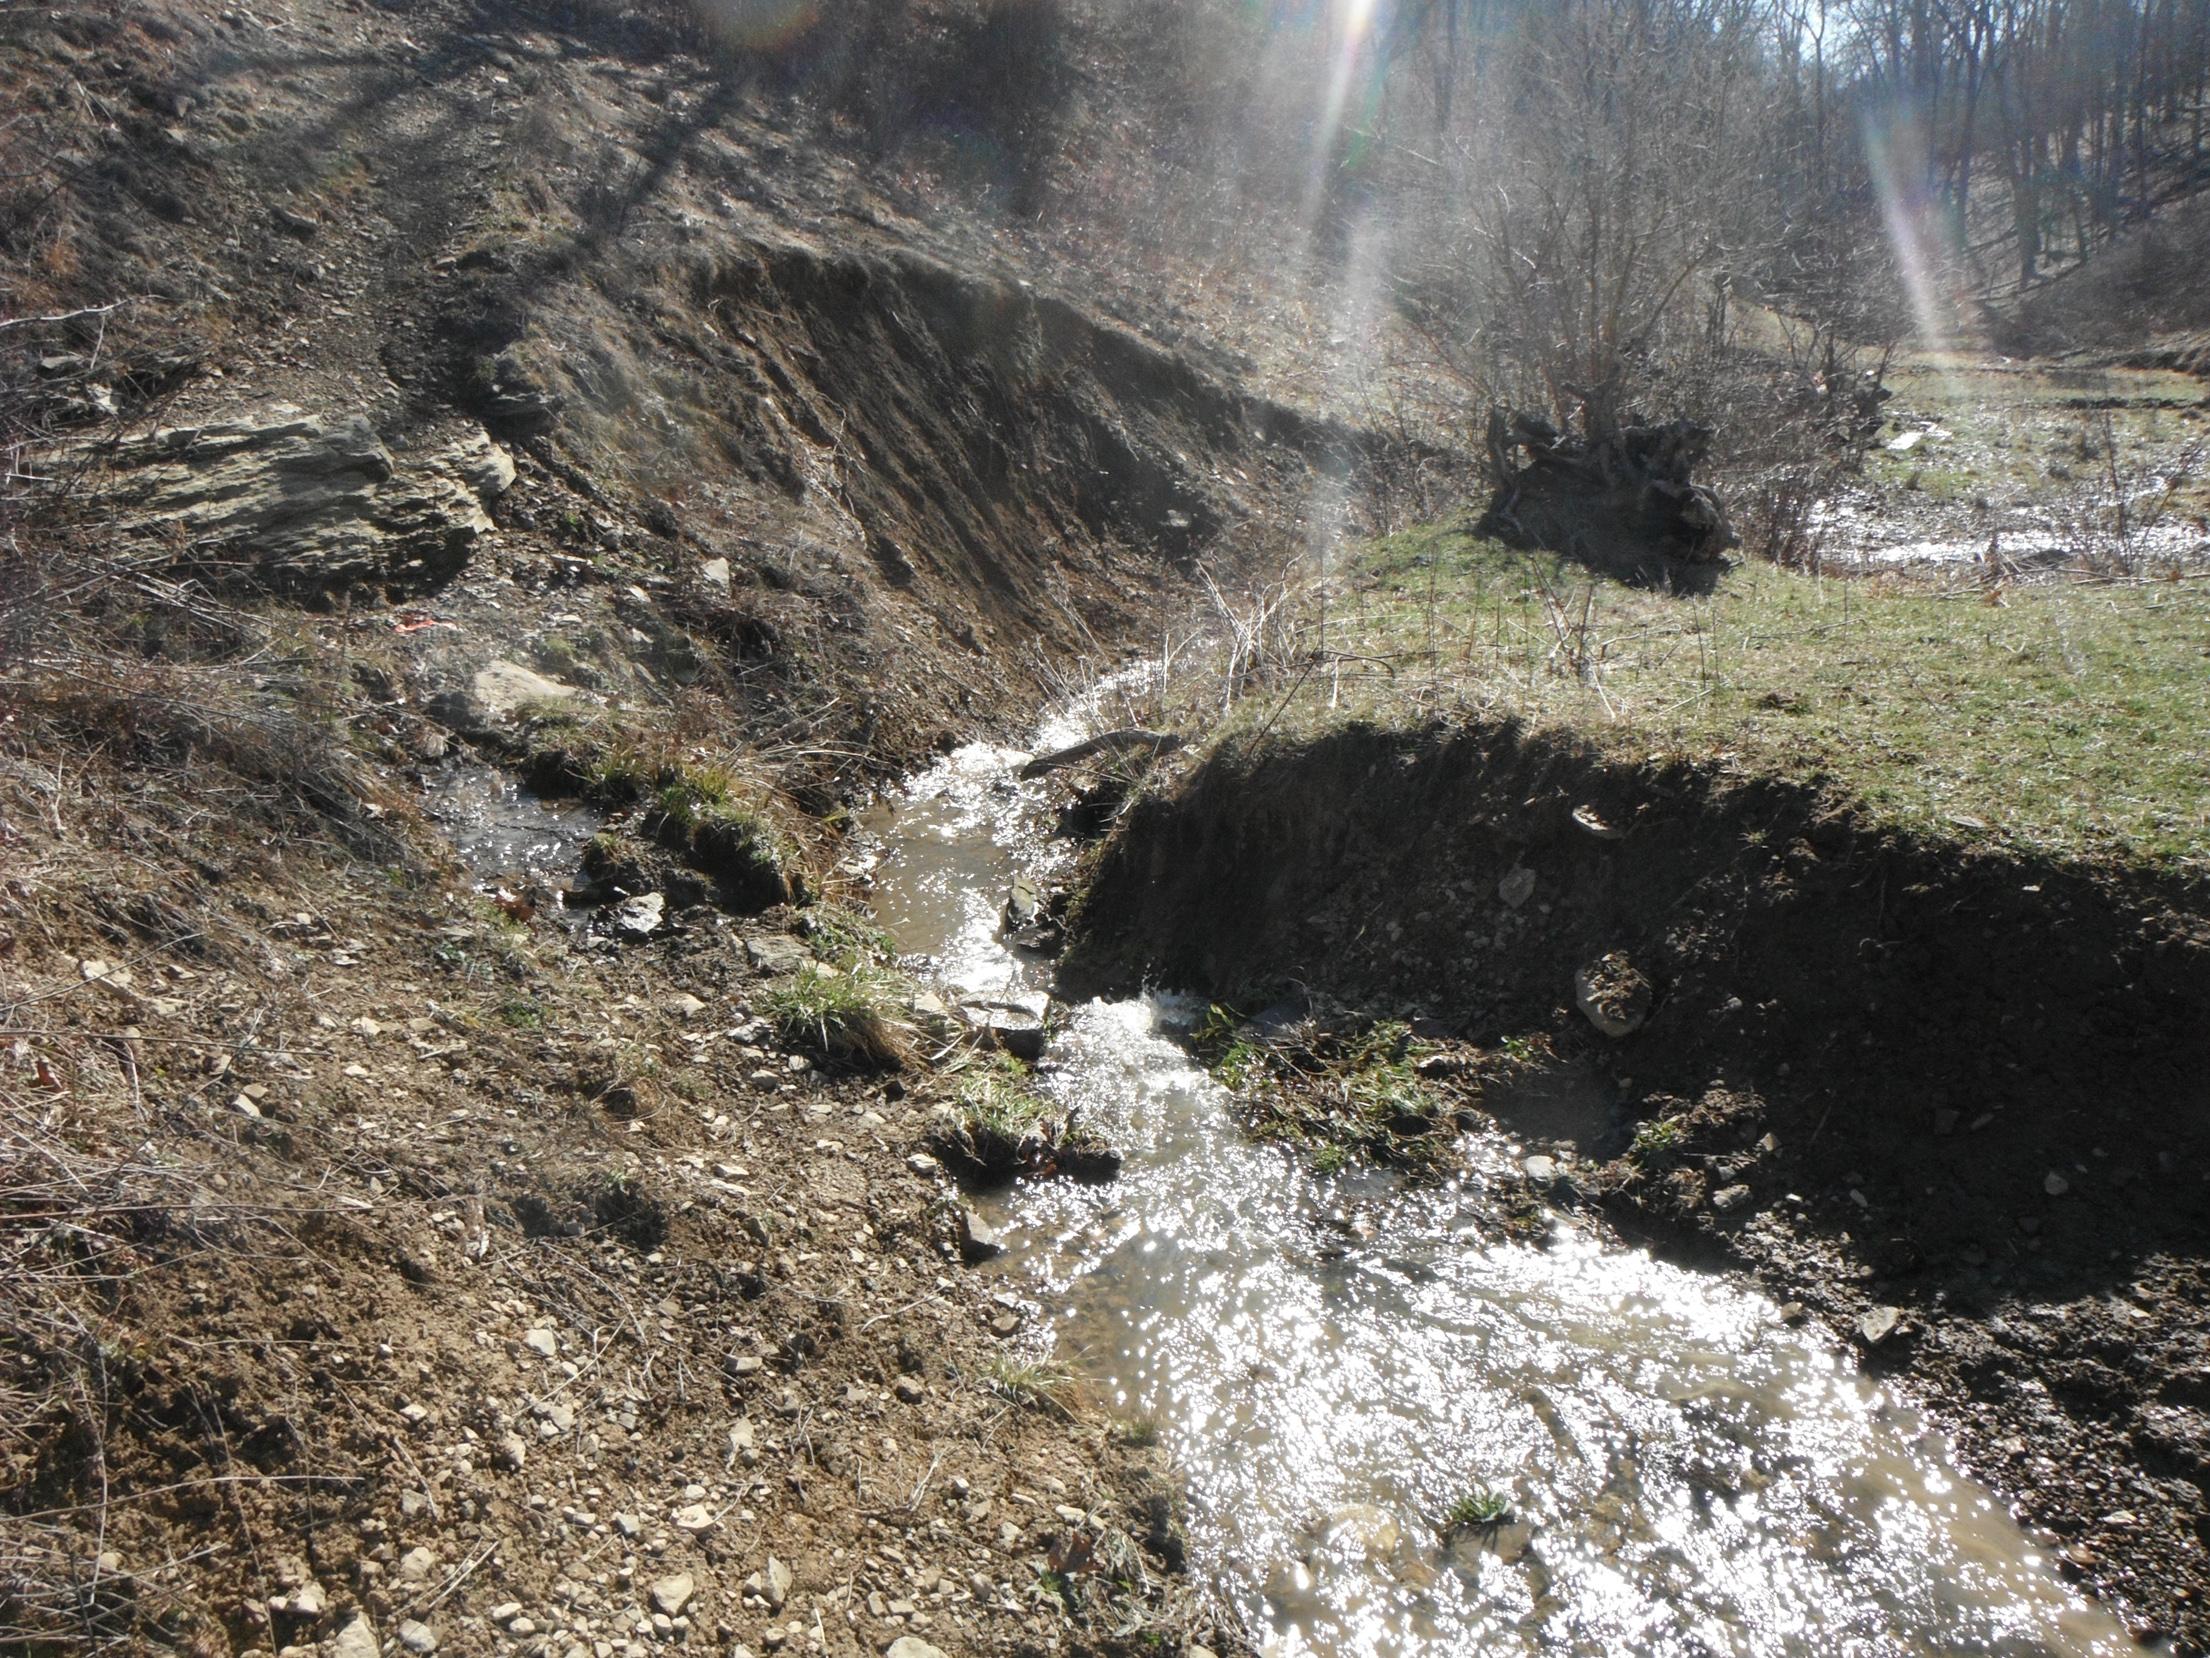 20140513hoWetlands First Pennsylvania Resource wants to restore this stream bed and sell shares of it to pipeline companies required to offset their construction impacts.